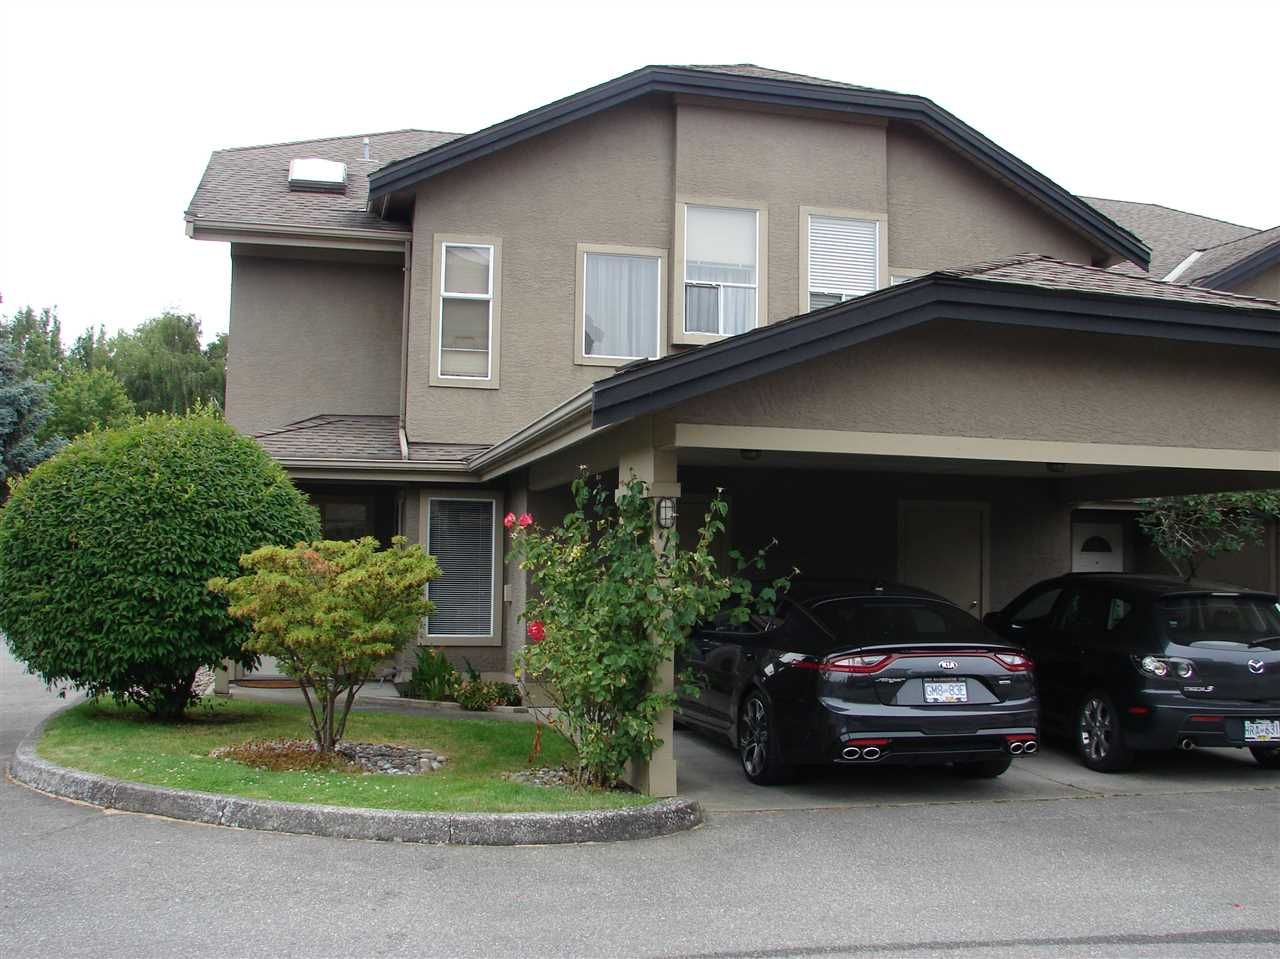 Main Photo: 23 12880 RAILWAY AVENUE in : Steveston South Townhouse for sale : MLS®# R2413049